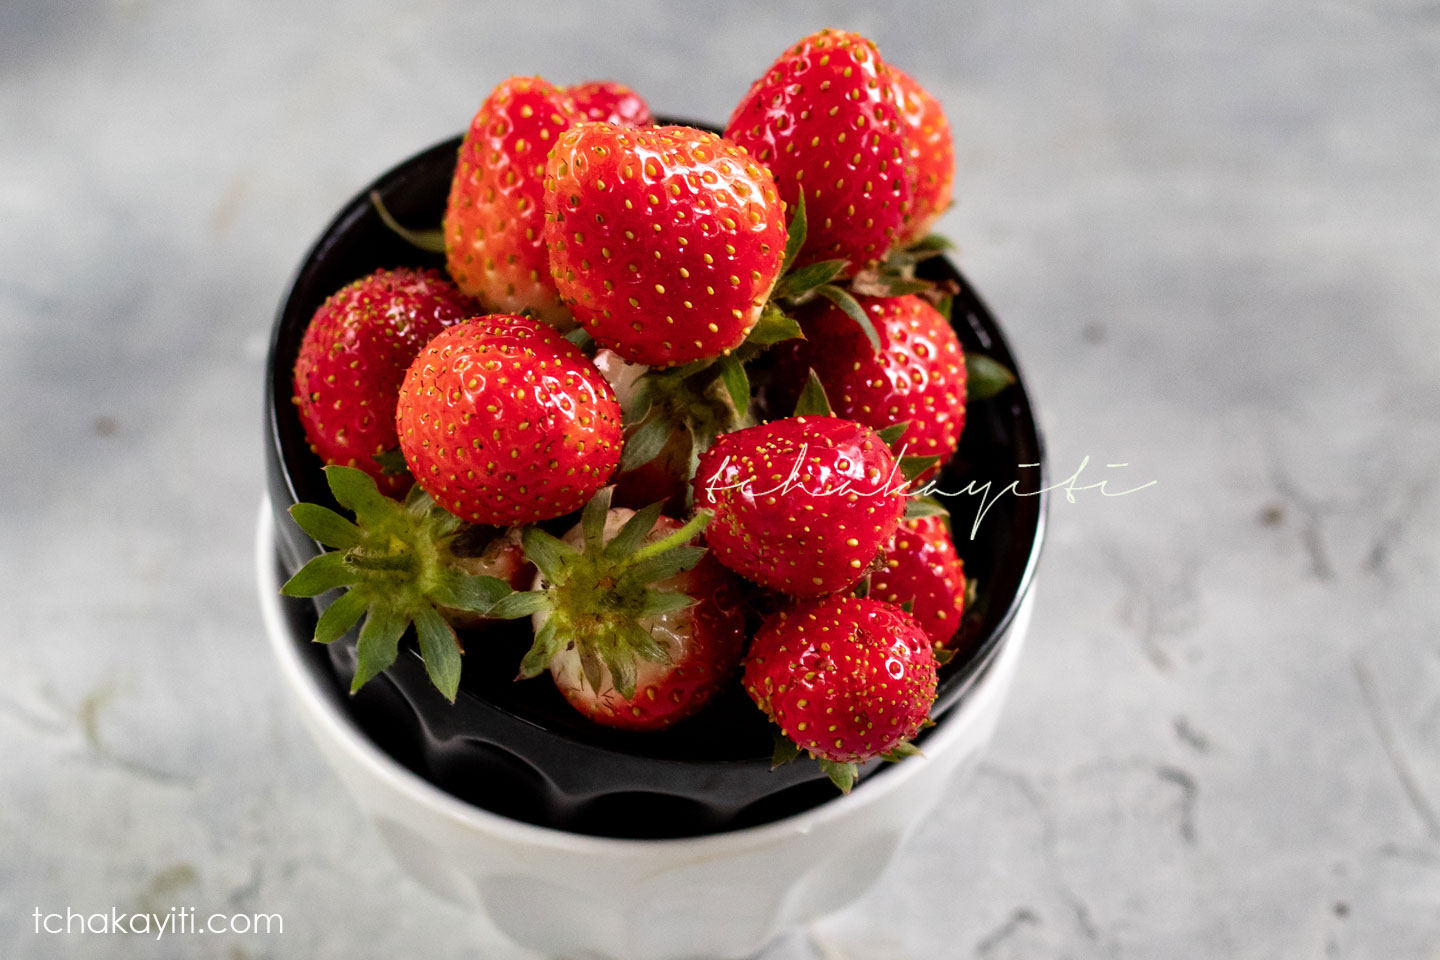 These strawberries are straight from our garden in Haiti. They're tiny but packed with flavors.   tchakayiti.com